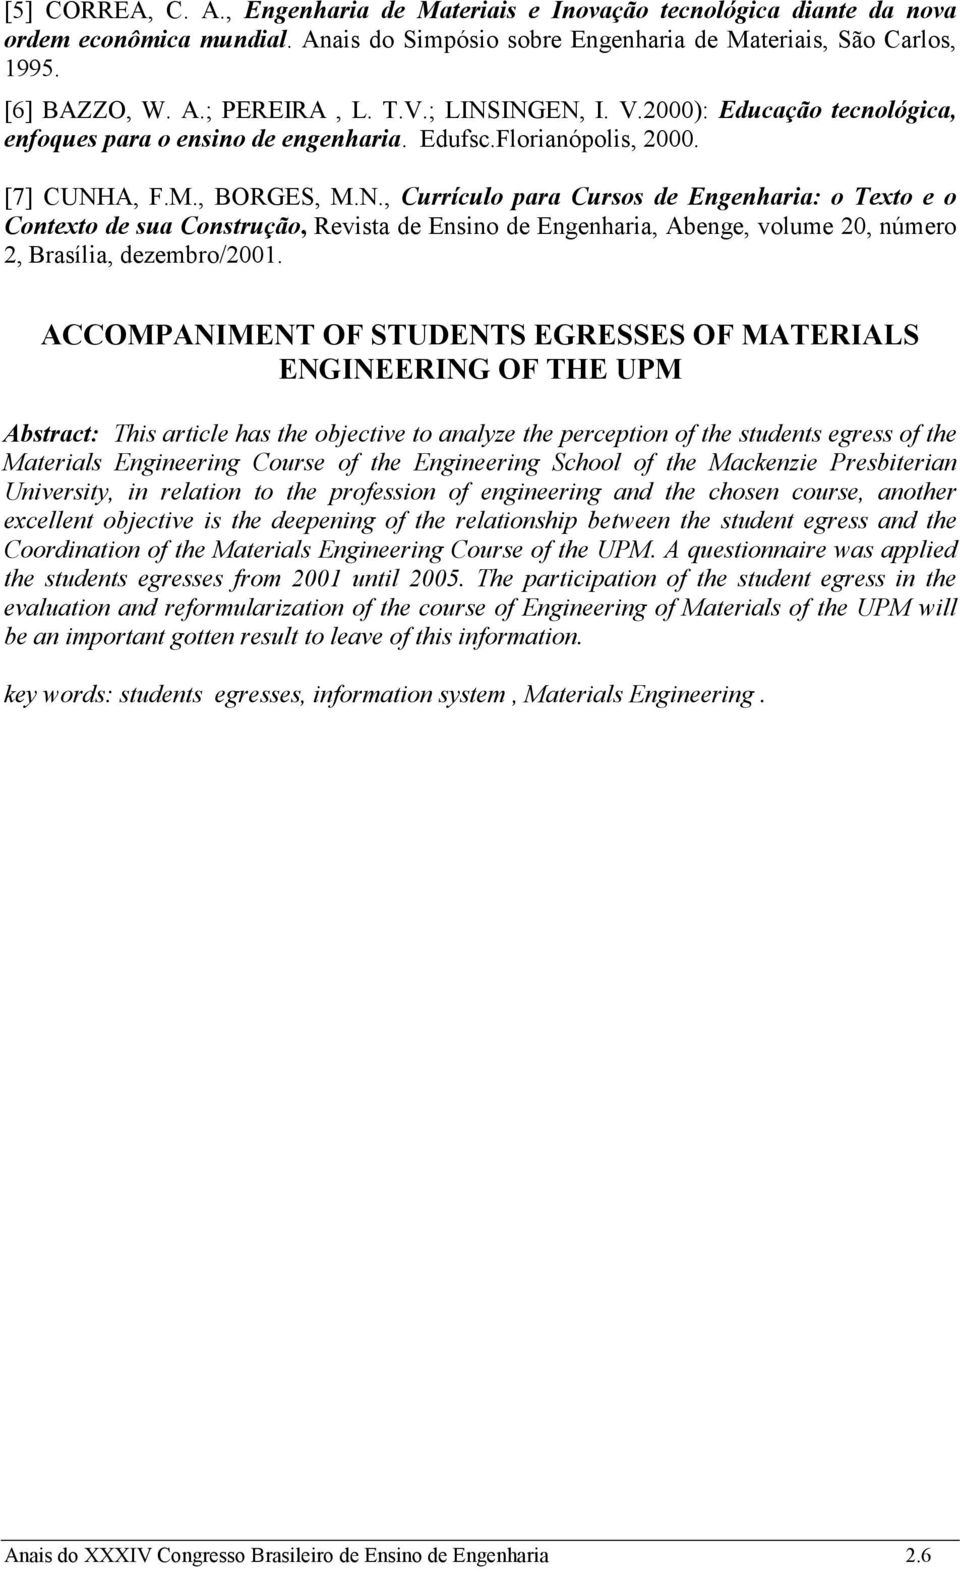 ACCOMPANIMENT OF STUDENTS EGRESSES OF MATERIALS ENGINEERING OF THE UPM Abstract: This article has the objective to analyze the perception of the students egress of the Materials Engineering Course of